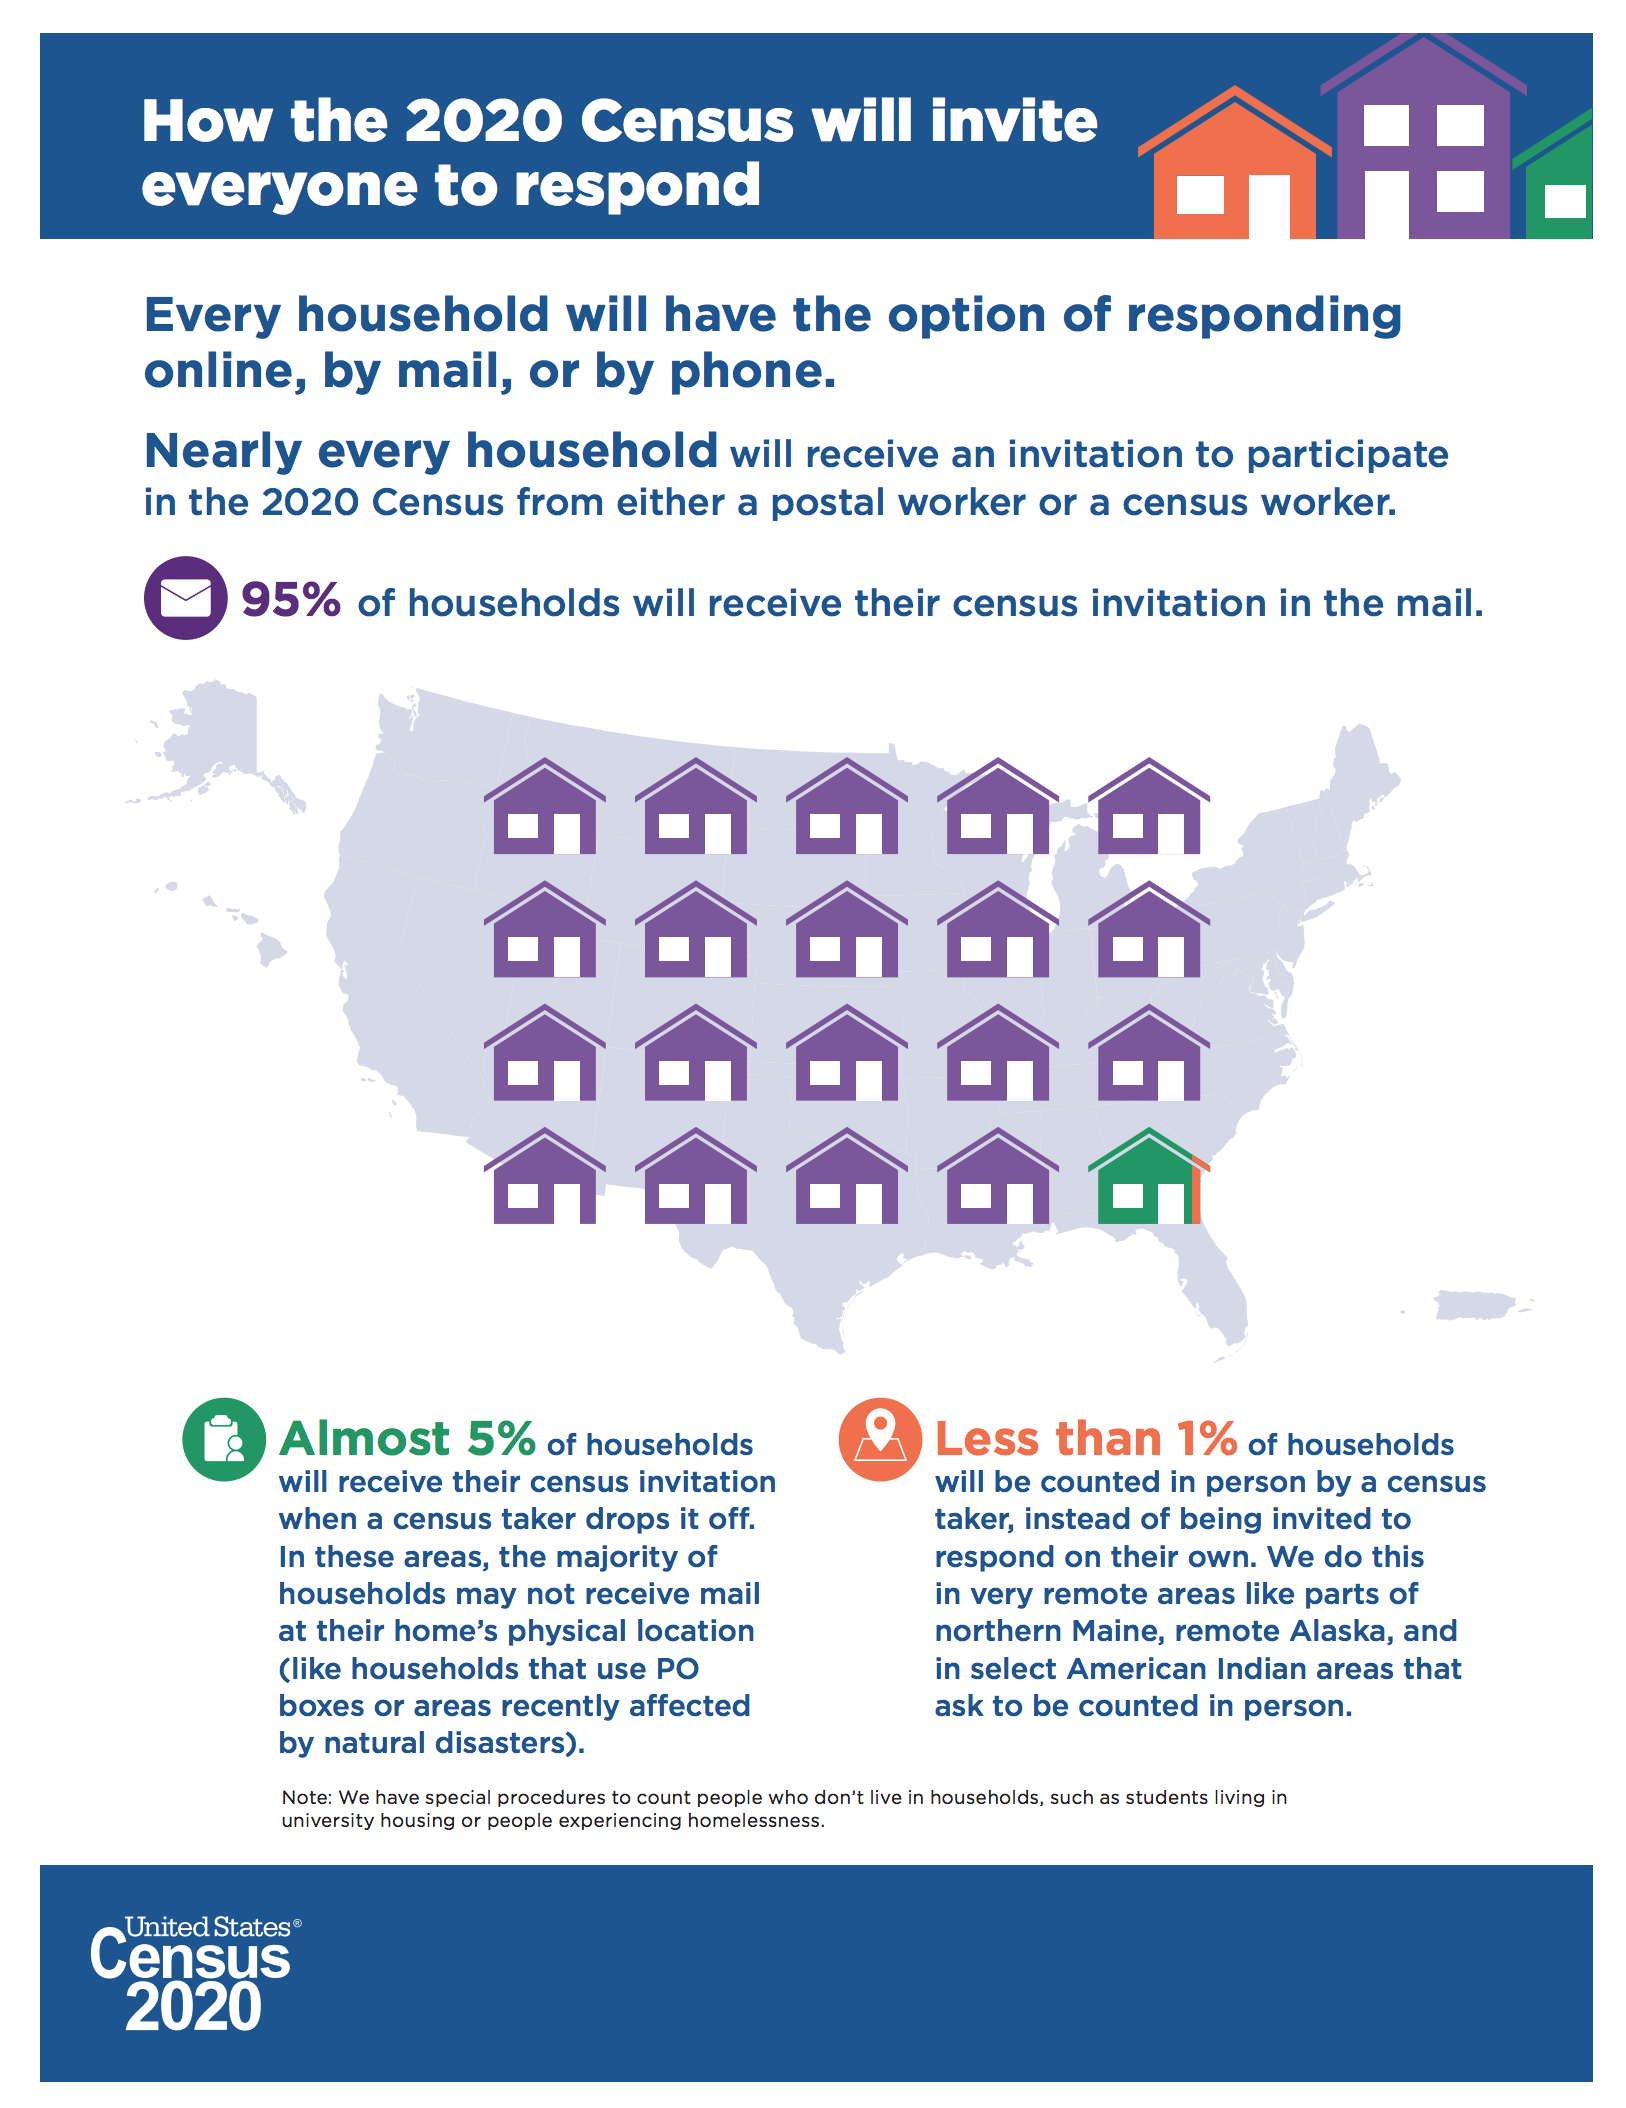 How the 2020 Census will invite everyone to respond- infographic